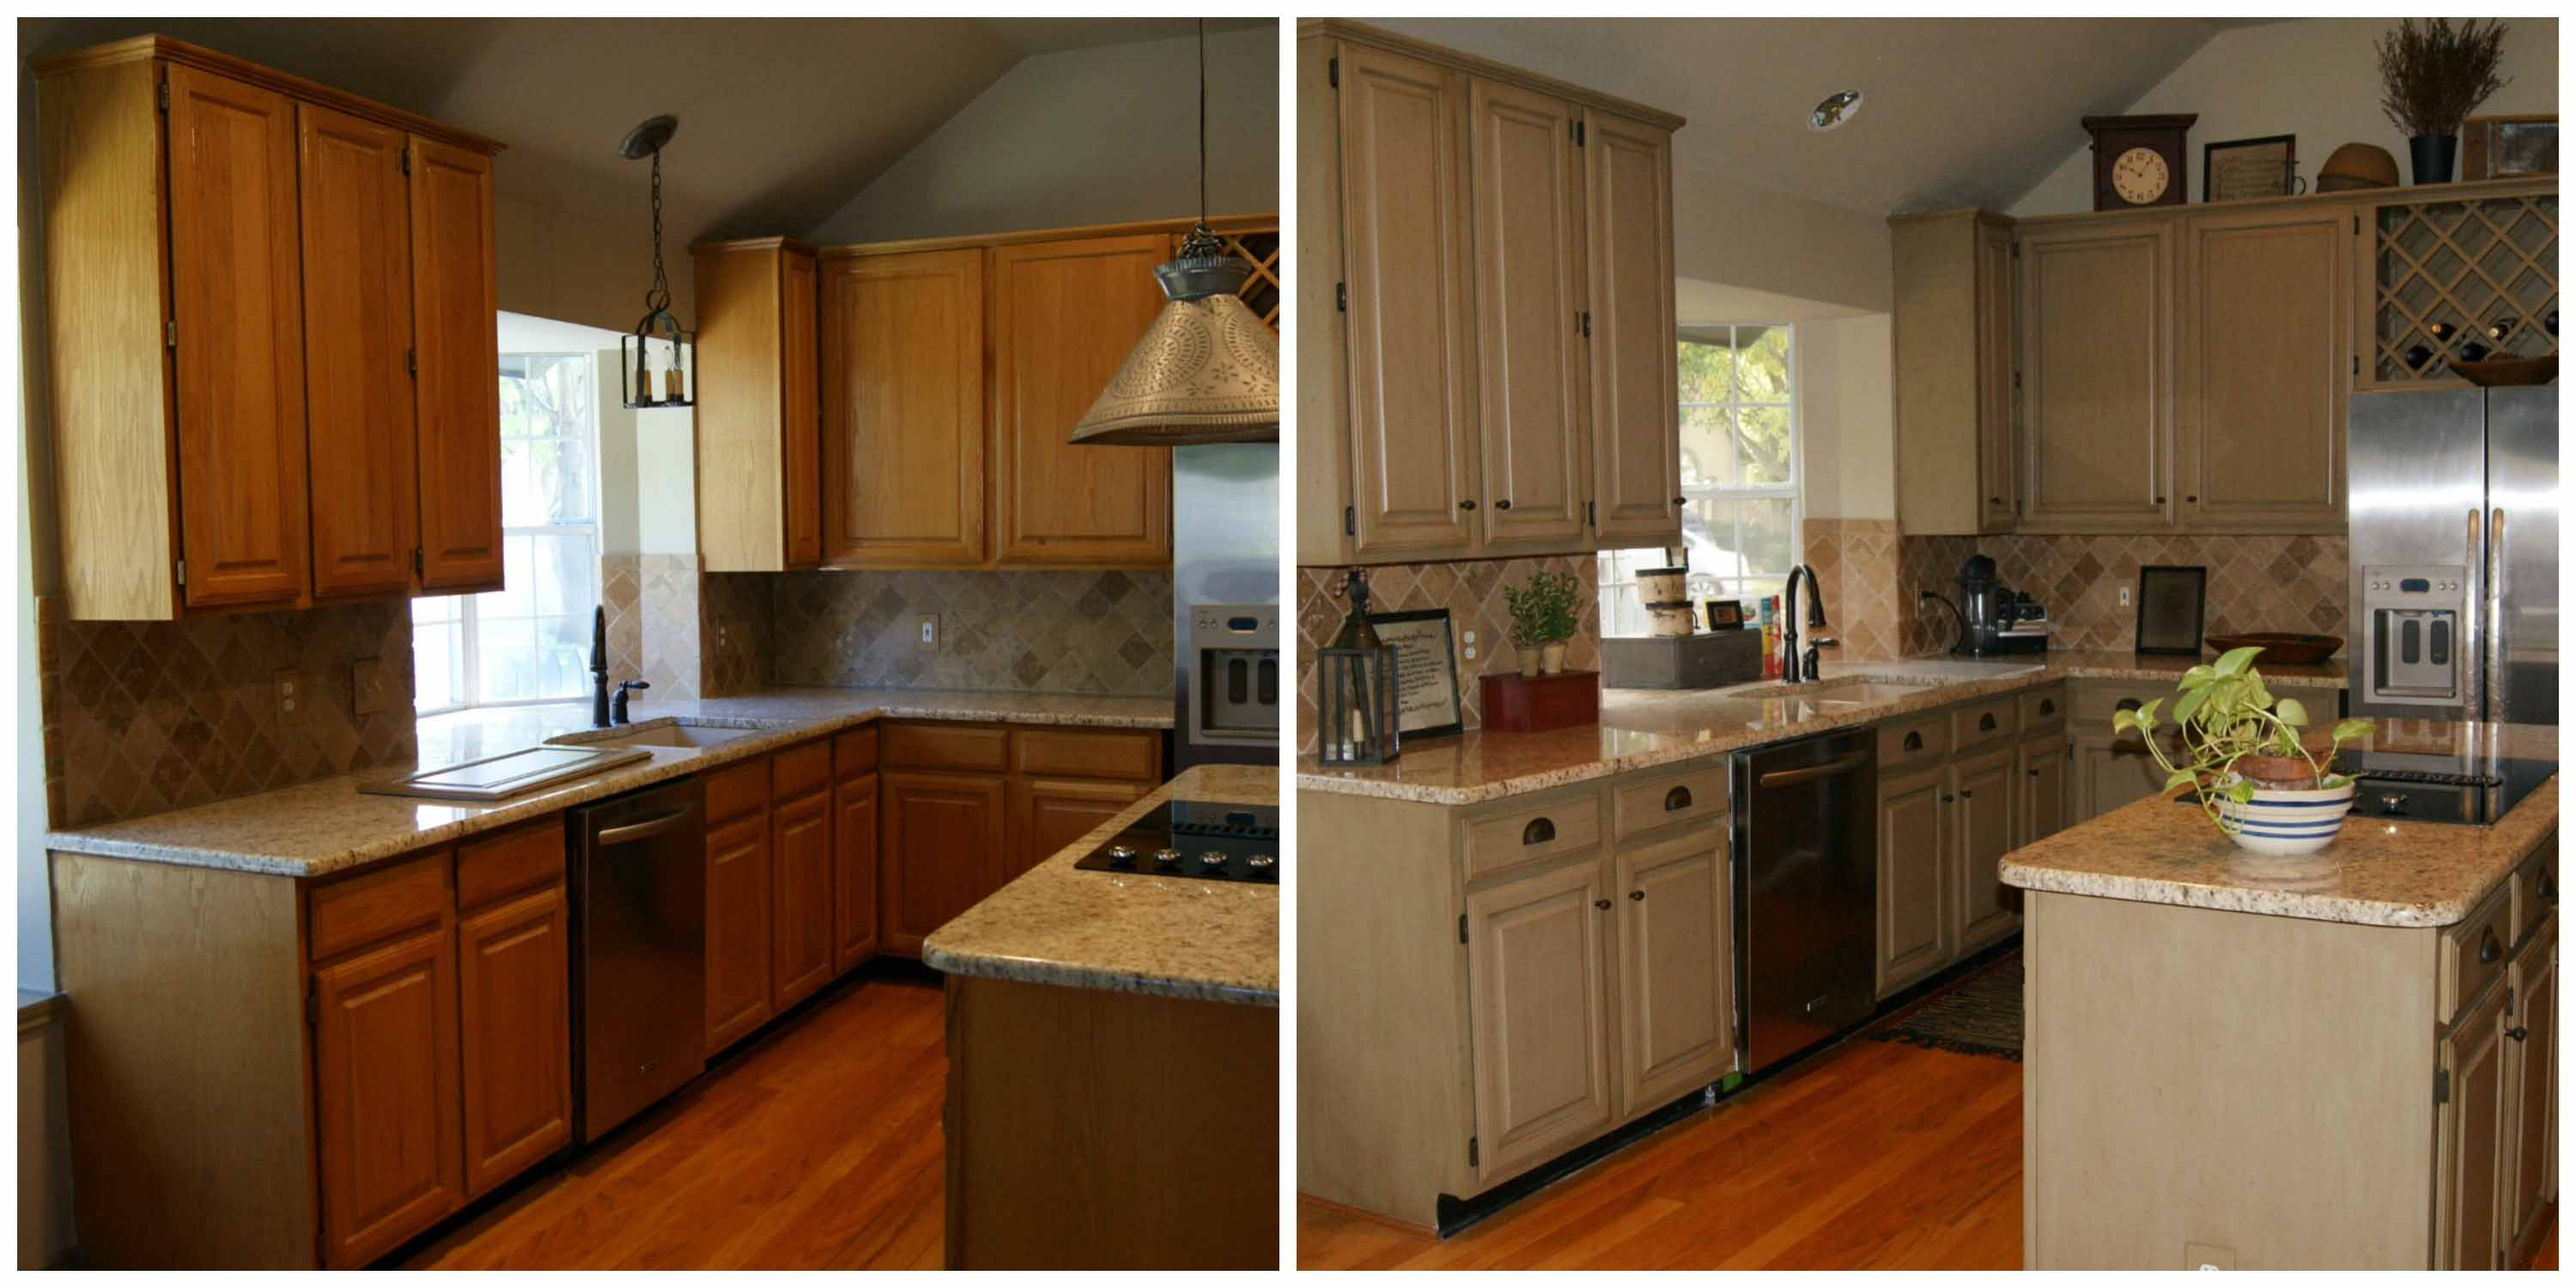 Grapevine Kitchen Cabinet Refinishing | Cabinet Refacing | Grapevine TX